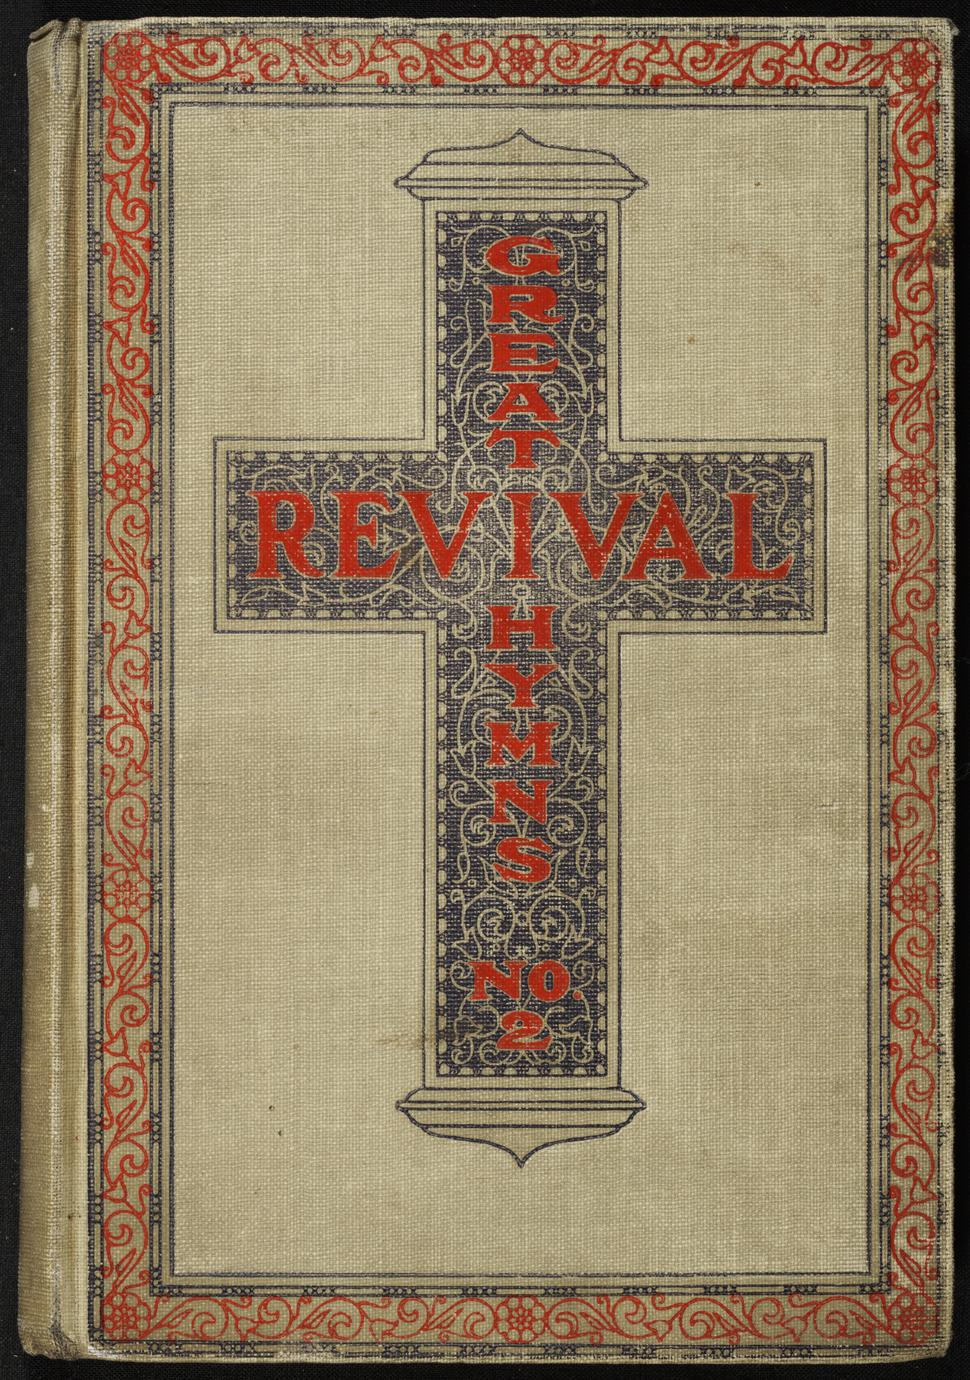 Great revival hymns, no. 2 : for the church, Sunday school and evangelistic services